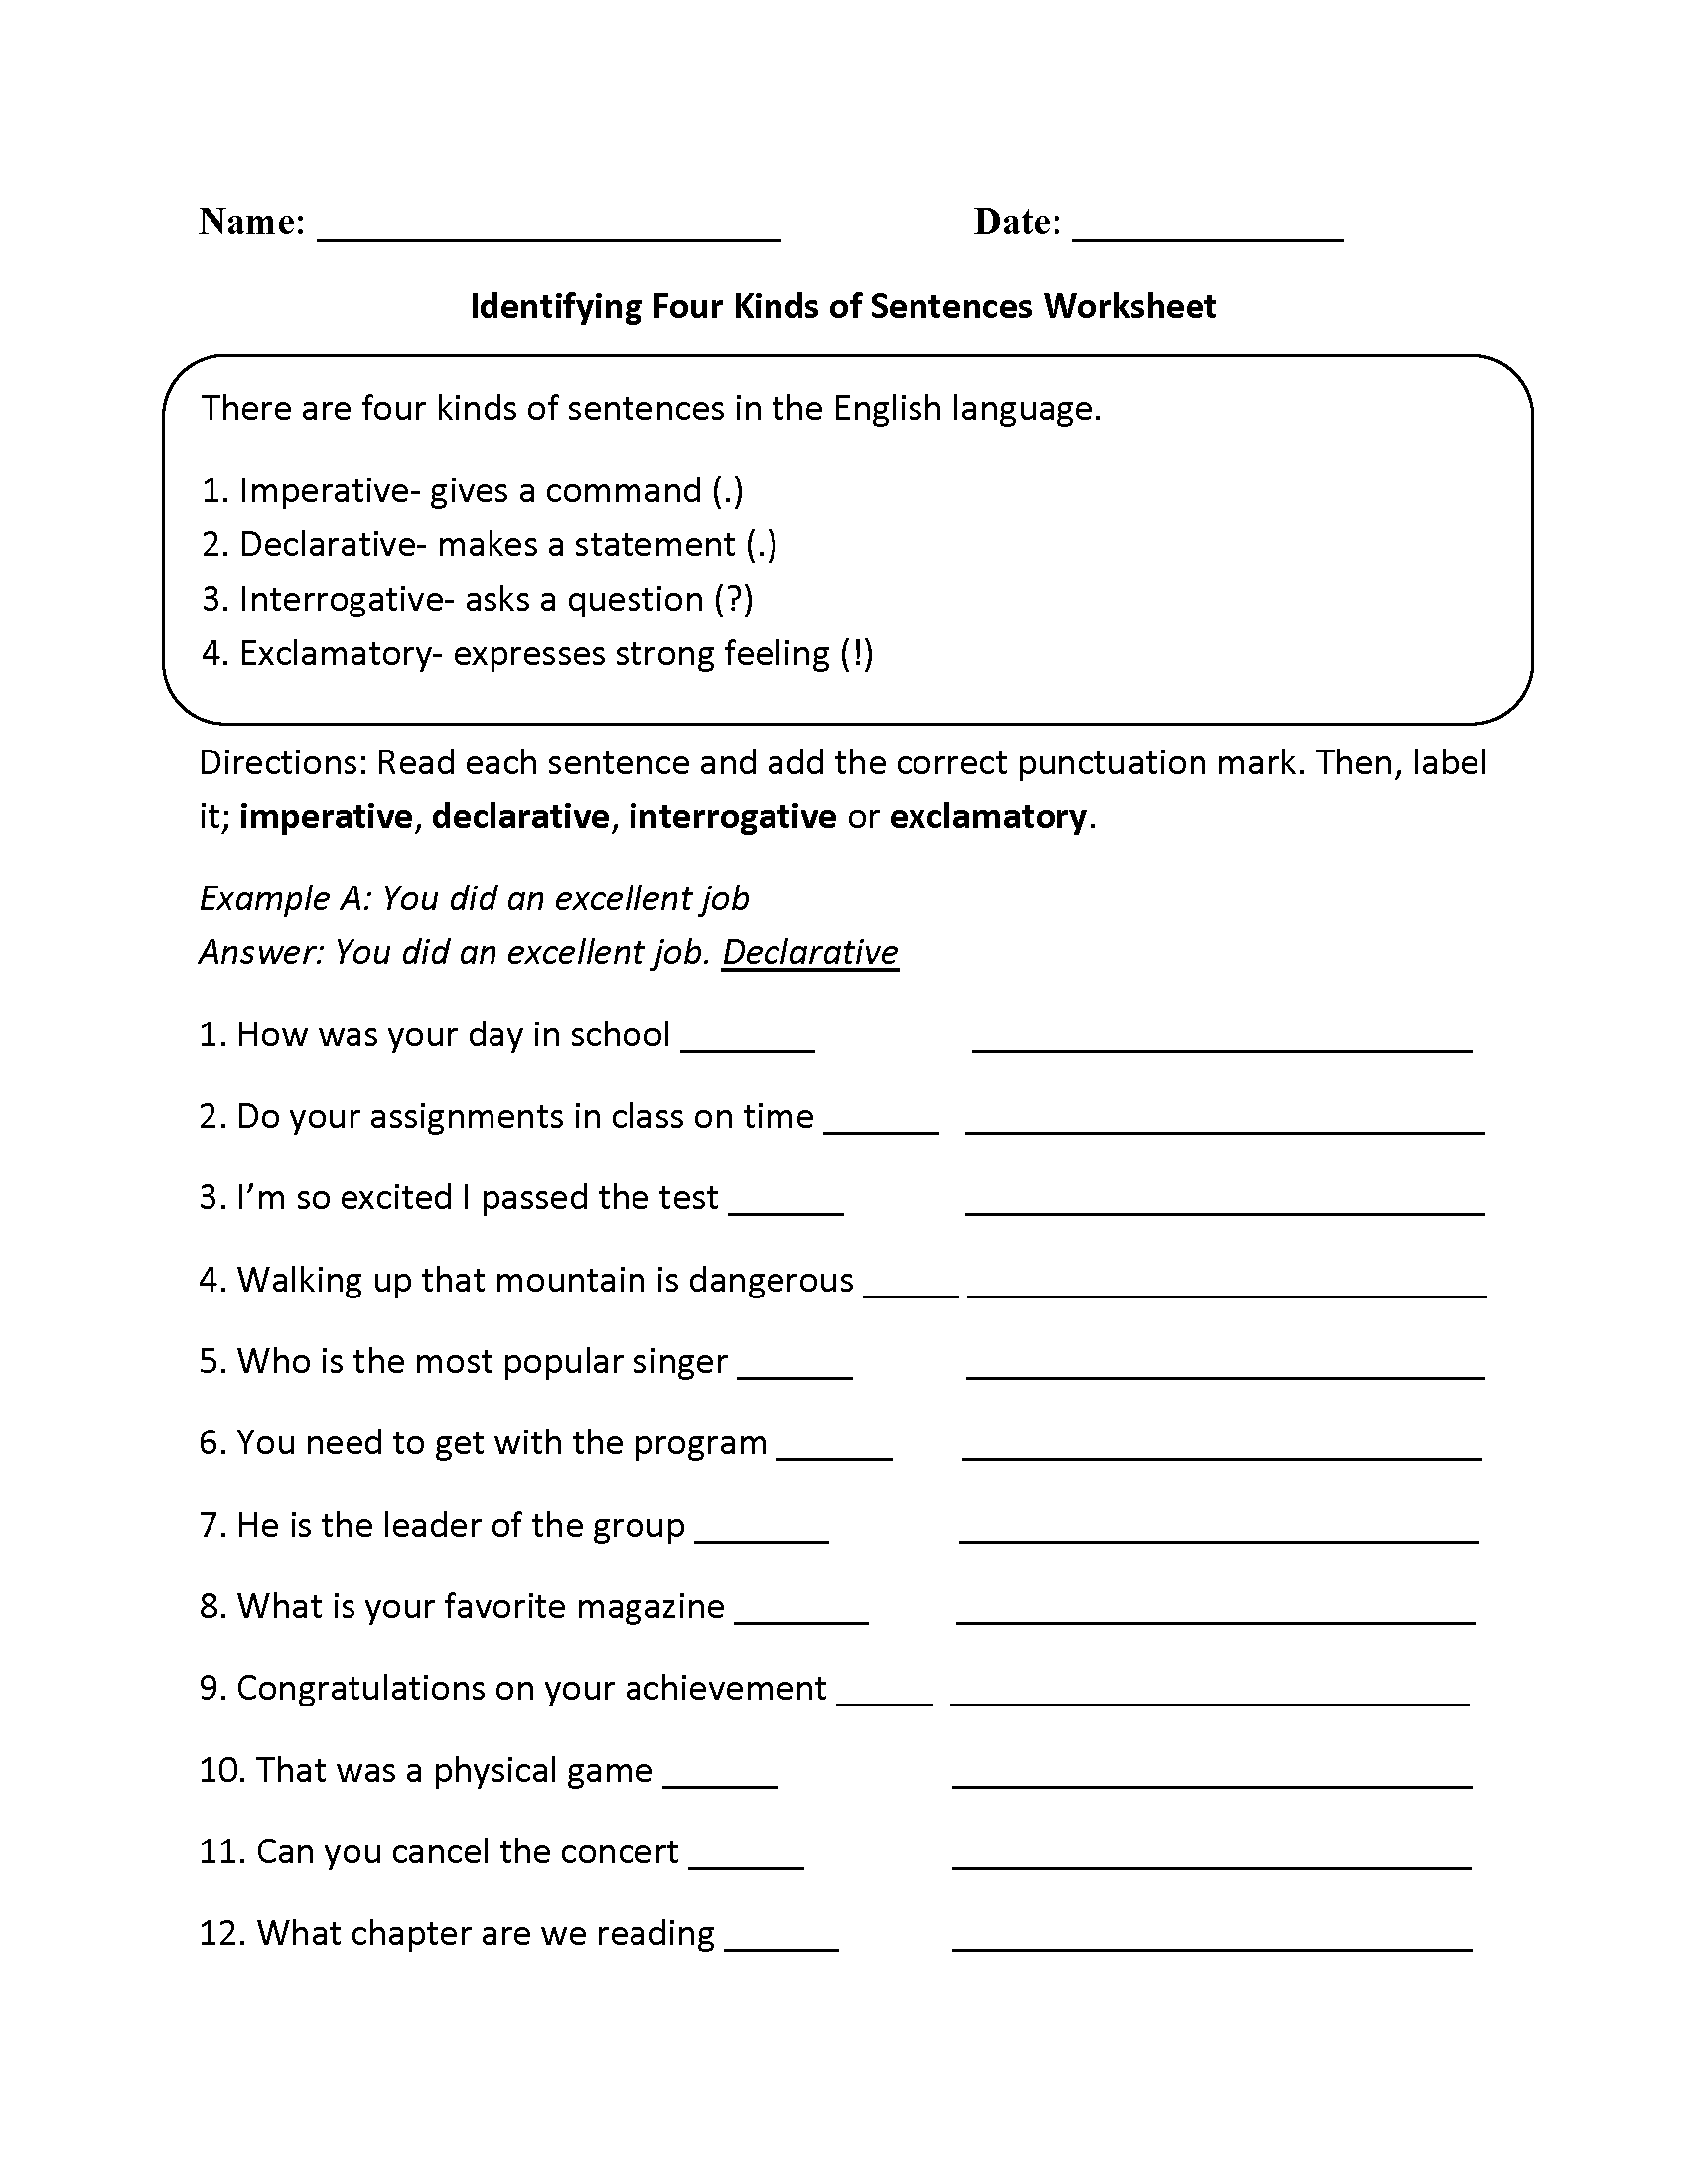 Worksheets Four Types Of Sentences Worksheet kinds of sentences worksheets practicing four worksheet